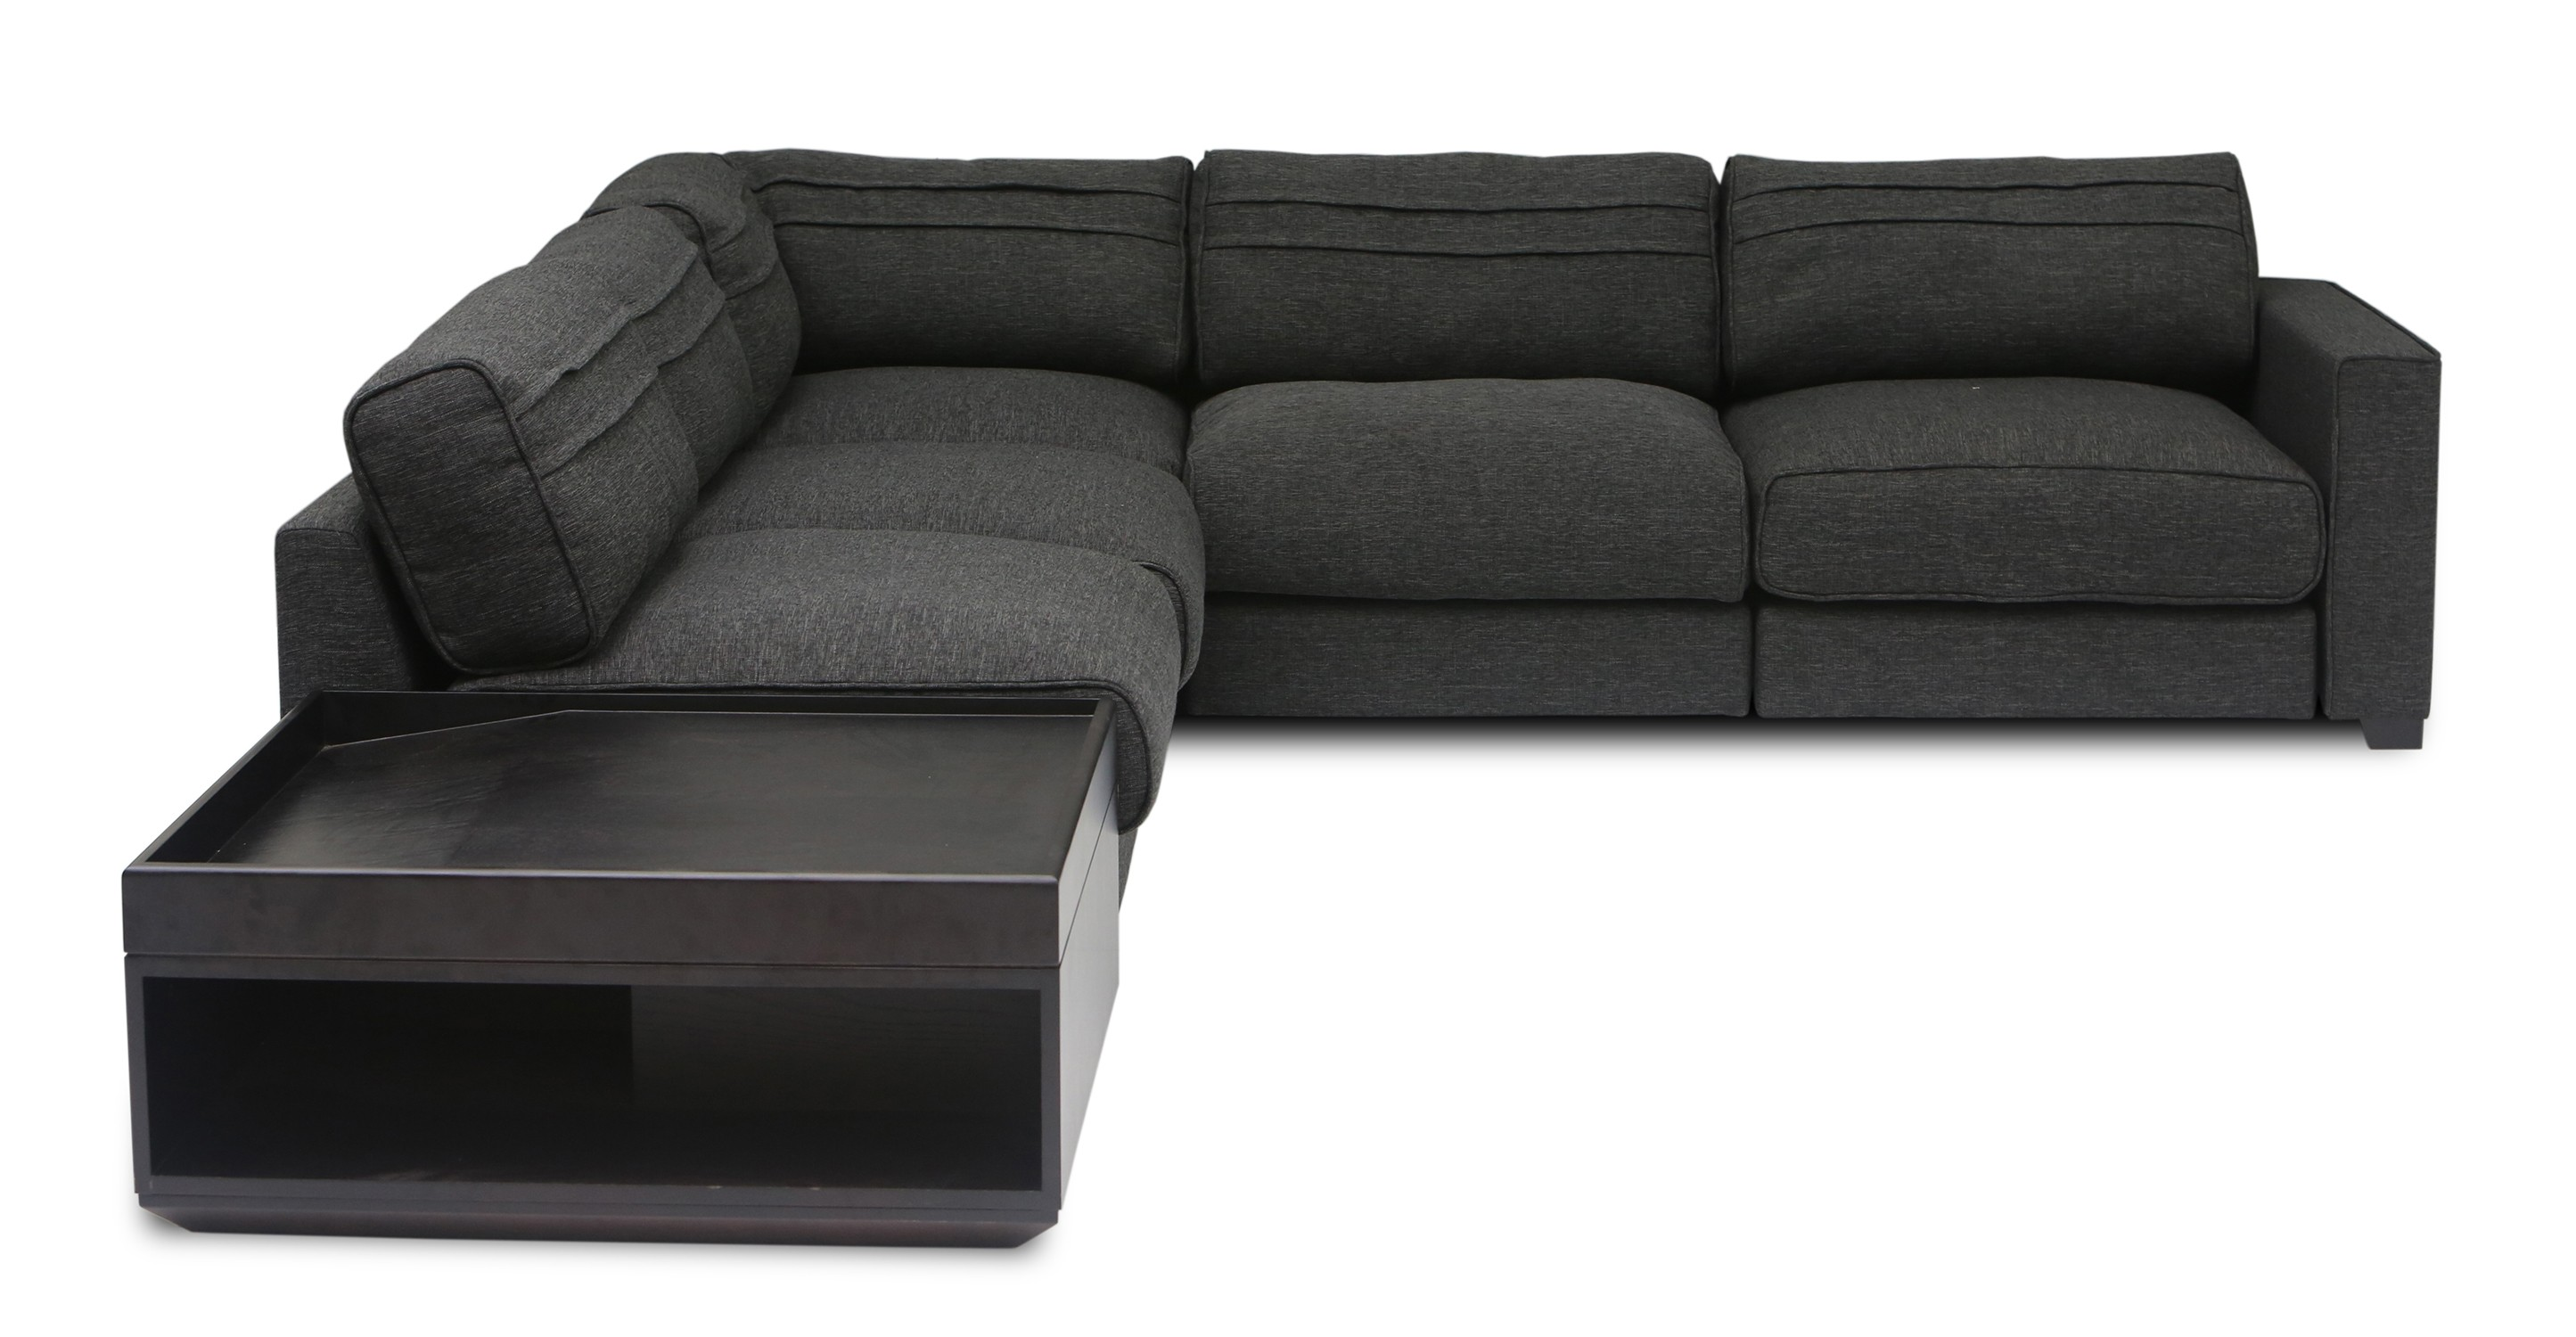 Vani Modular 4 Seat Sectional With Coffee Table